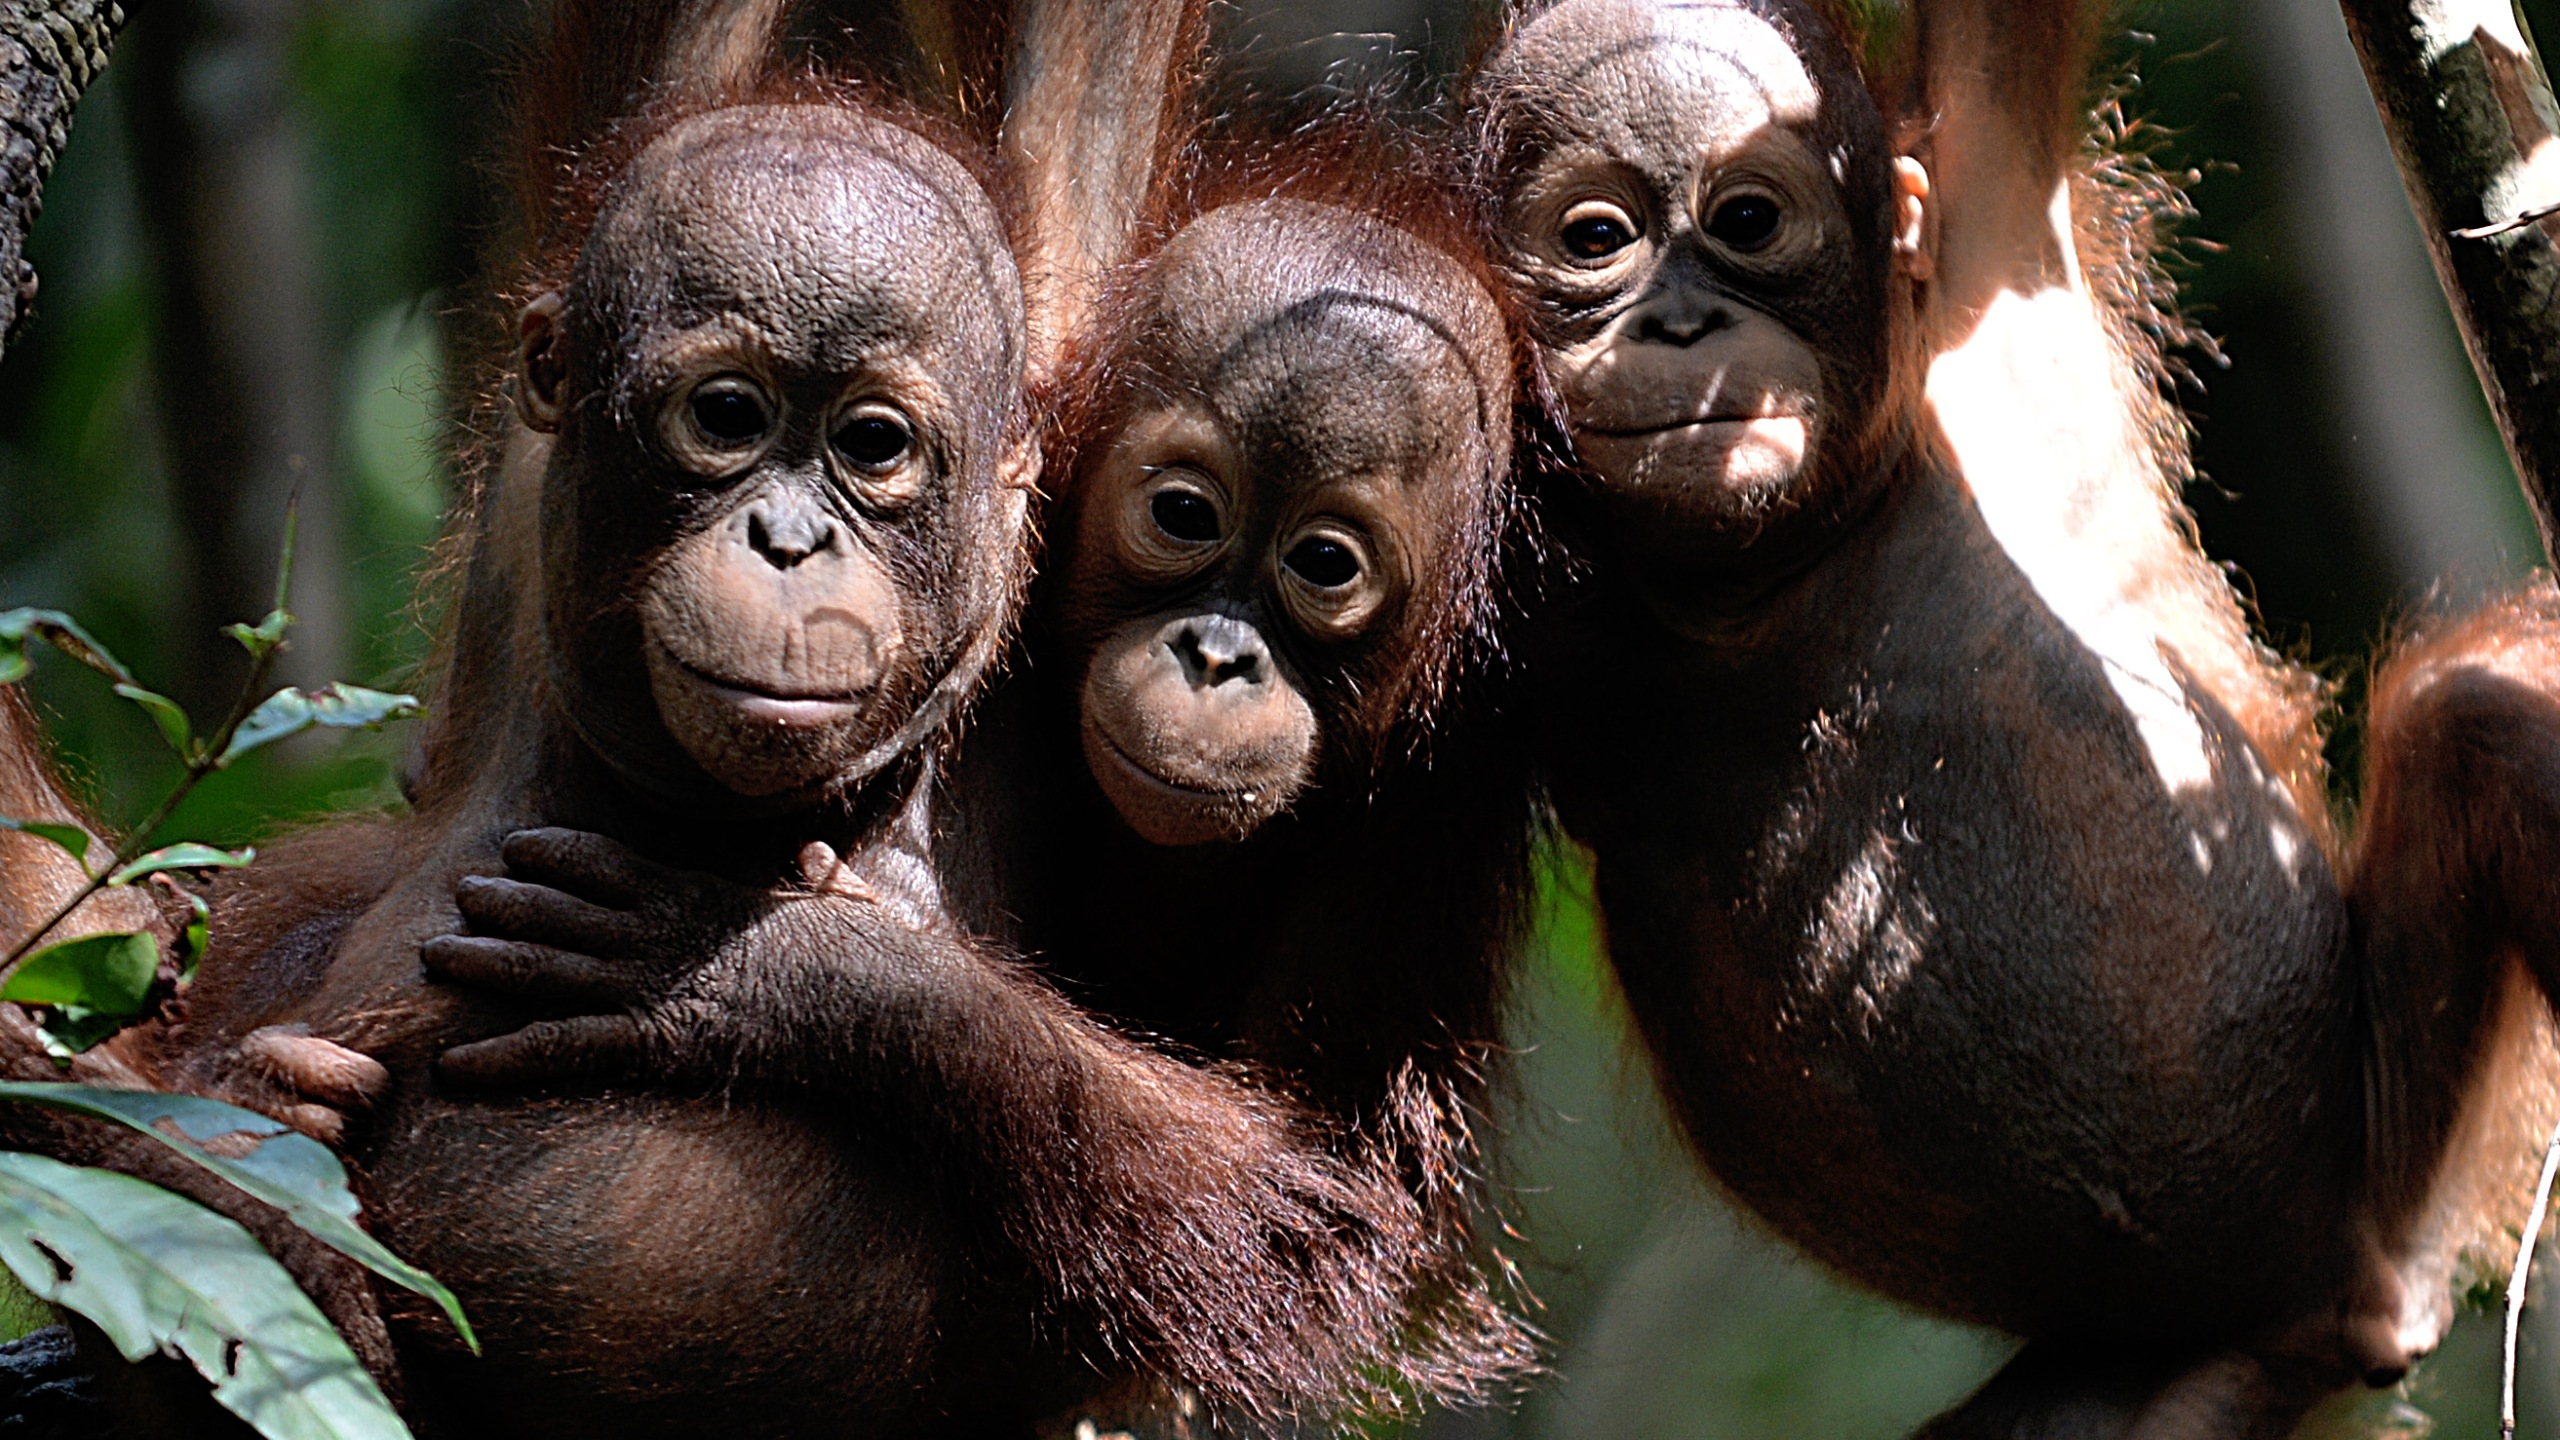 """This picture taken on August 4, 2016 shows three orphaned orangutan babies hanging in a tree while attending """"jungle school"""" at the International Animal Rescue Centre outside the city of Ketapang in West Kalimantan, Indonesia. (Credit: BAY ISMOYO/AFP/Getty Images)"""